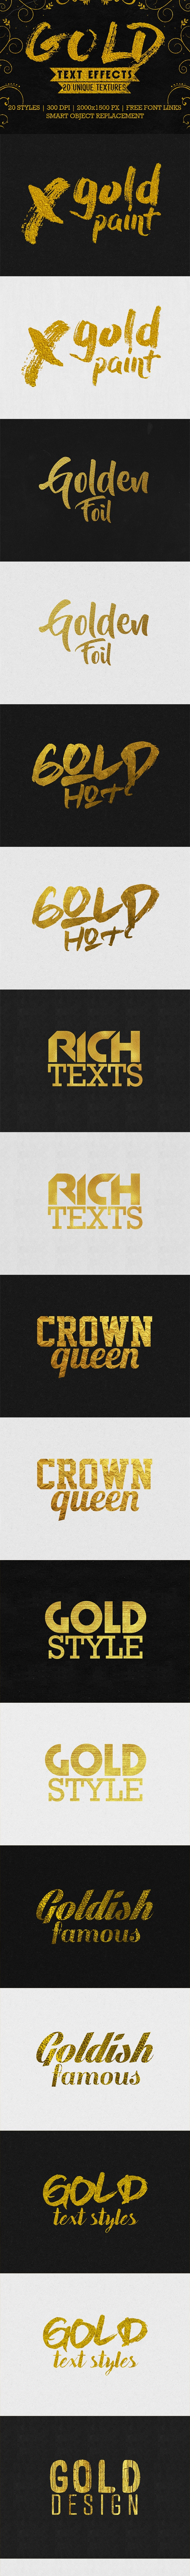 Gold Text Effects - Text Effects Actions